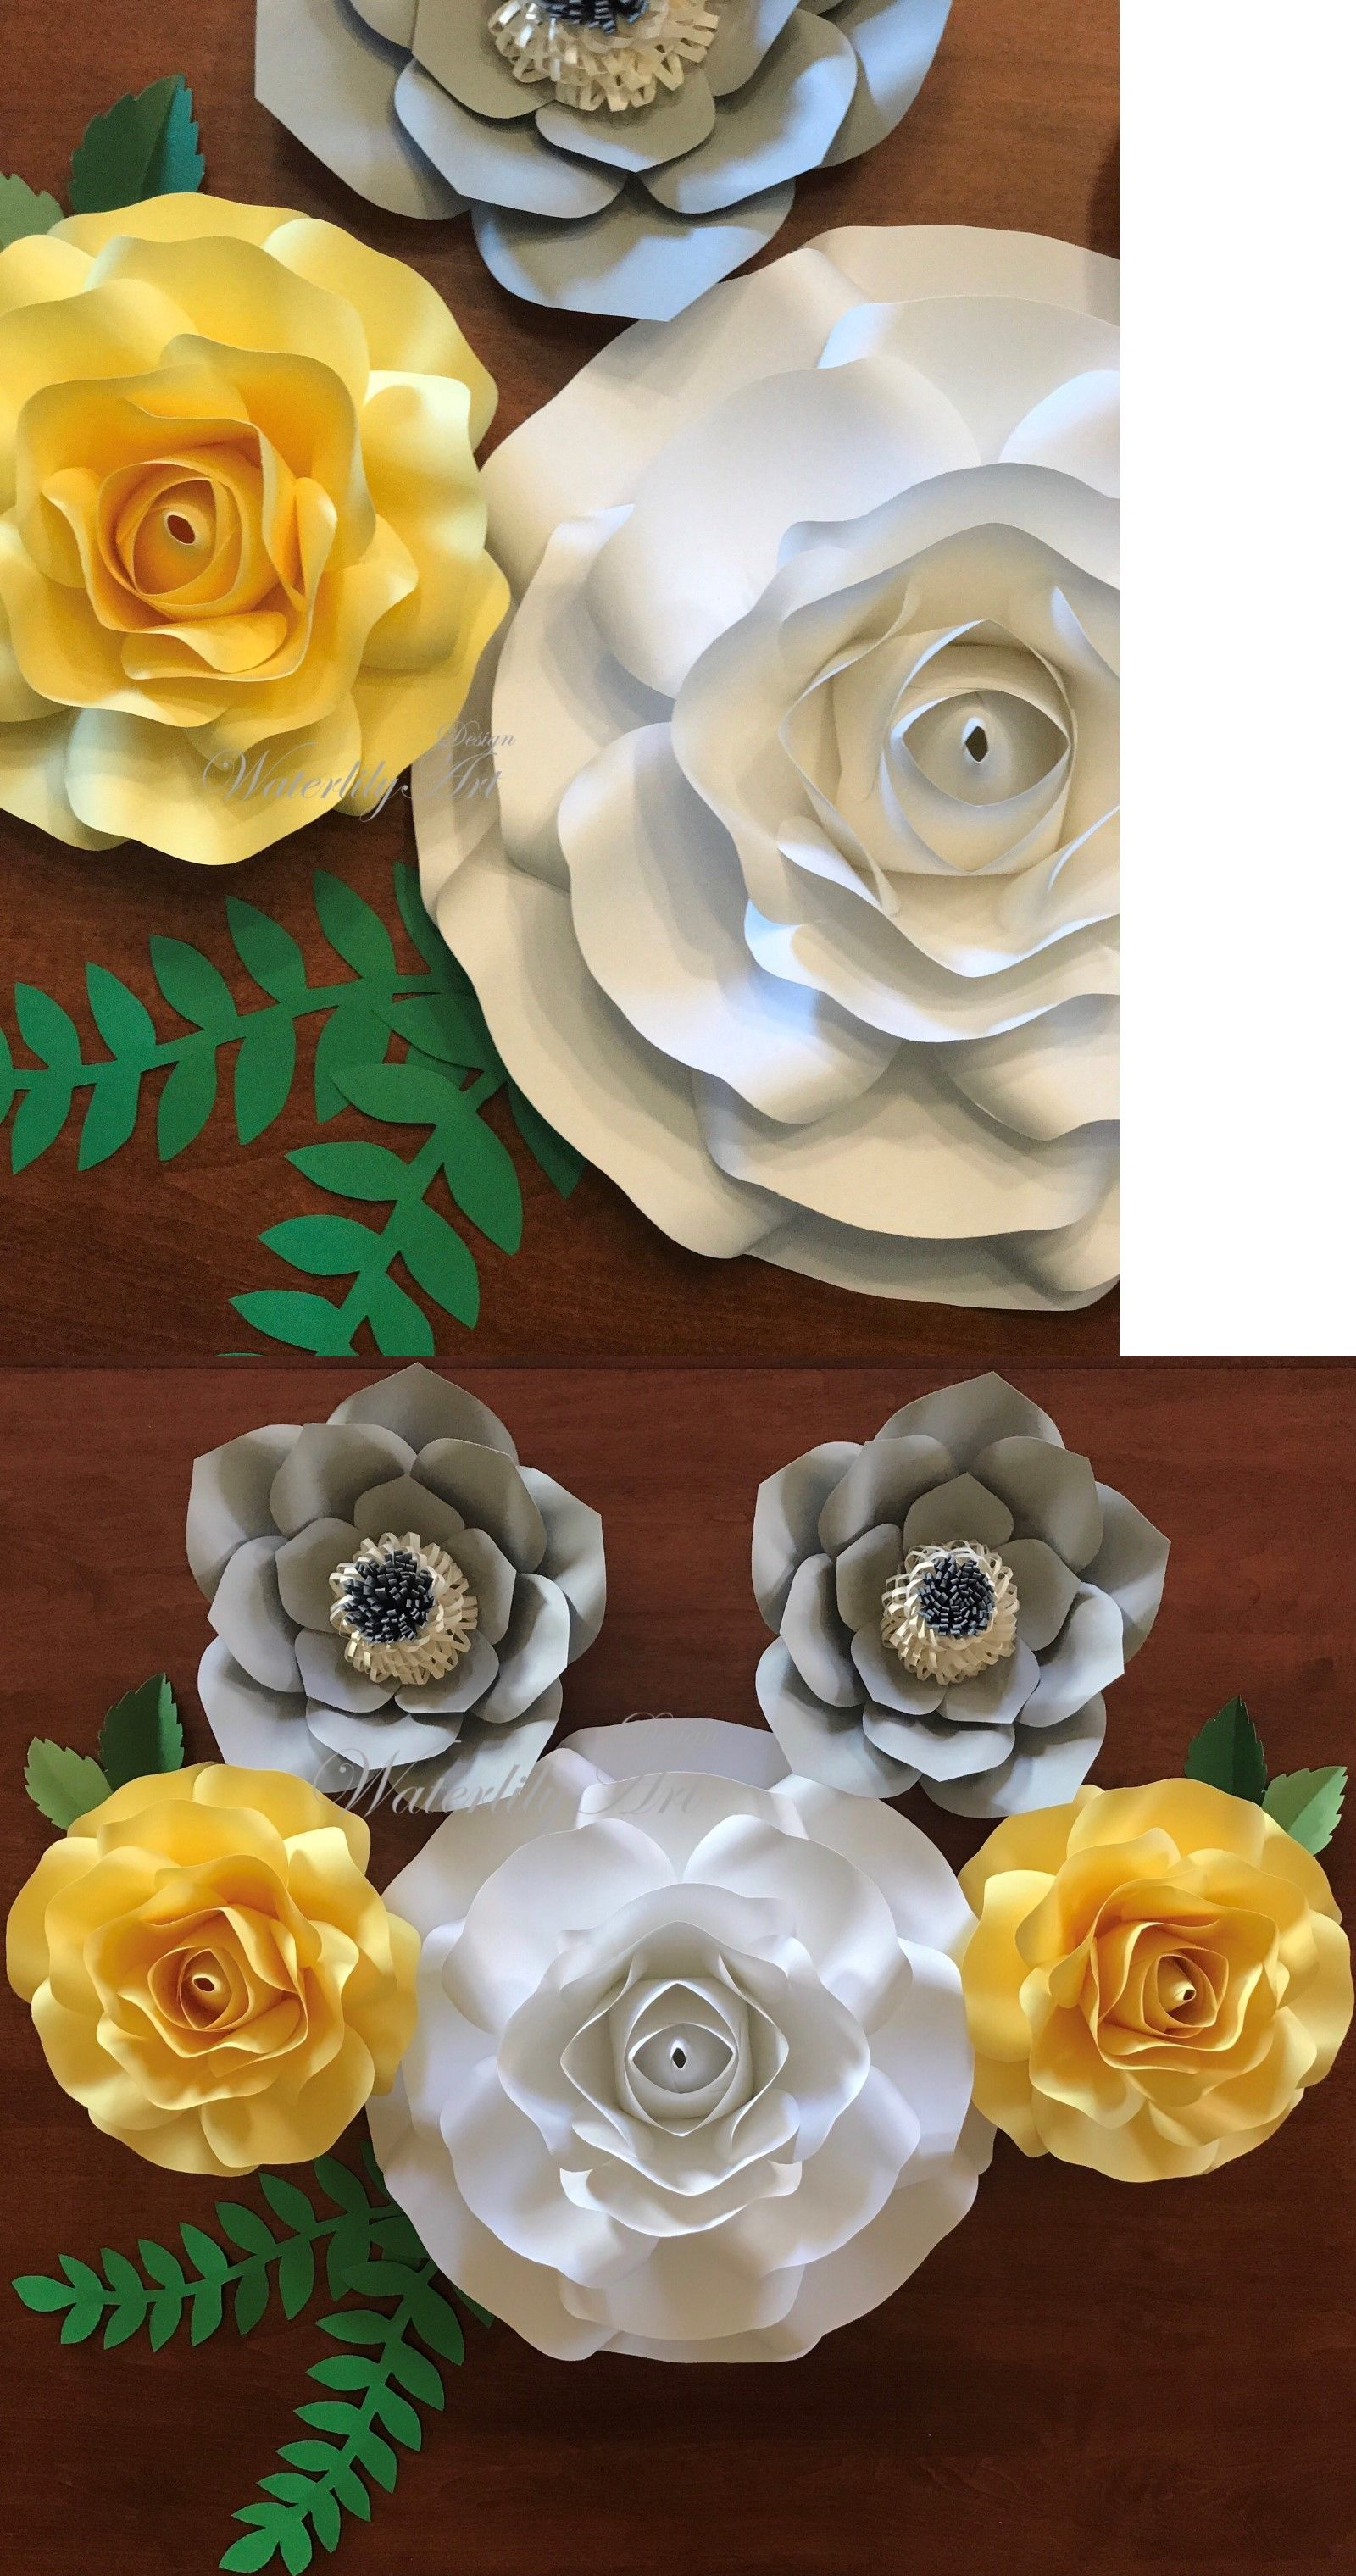 Flower embellishments 160734 white yellow grey paper flowers buy flower embellishments 160734 white yellow grey paper flowers buy it now mightylinksfo